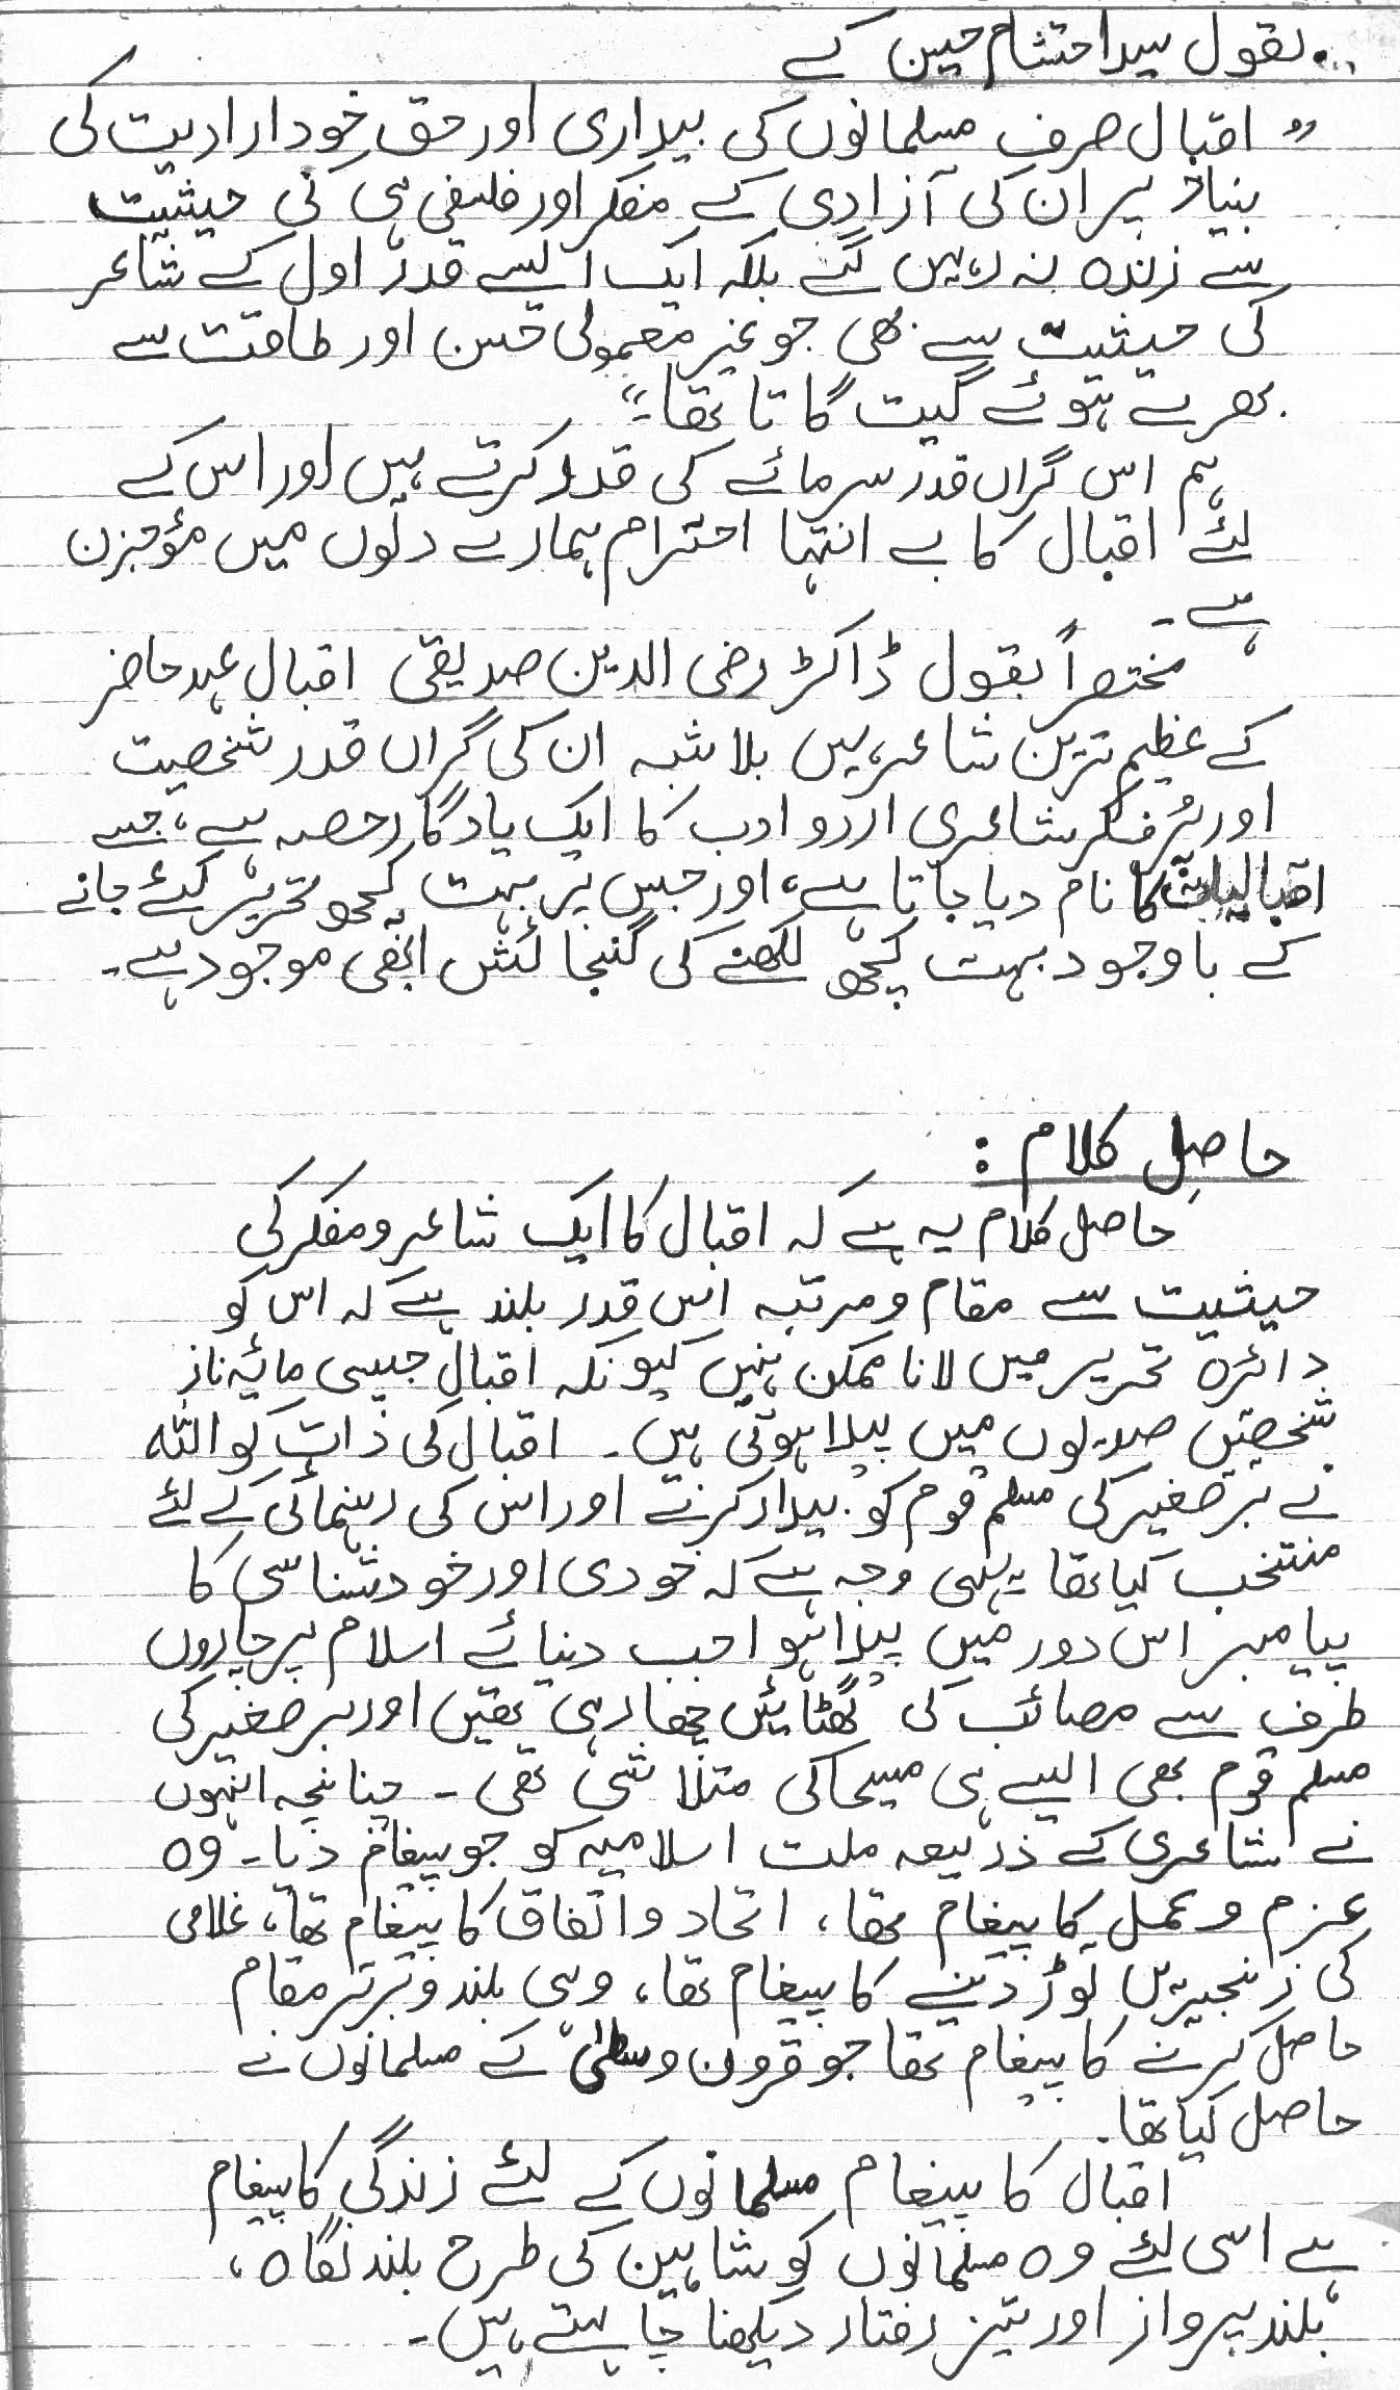 003 Jpg Urdu Essay Allama Iqbal Dreaded On In For Class 10 With Poetry Ka Shaheen Headings And 1400